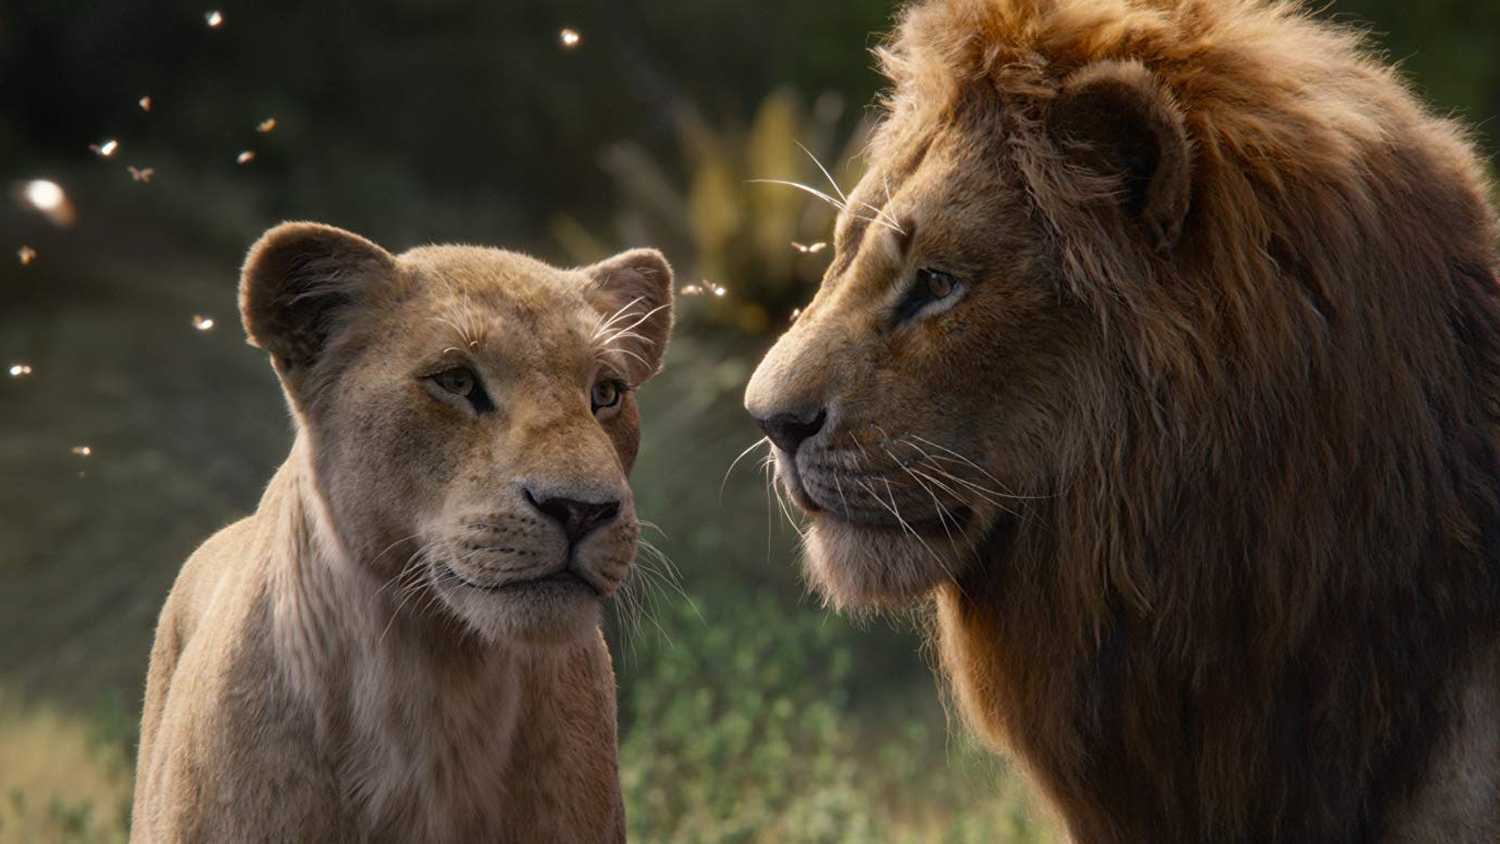 Lion King 2019: Lies take away the position of the lioness - Beauty Magazine